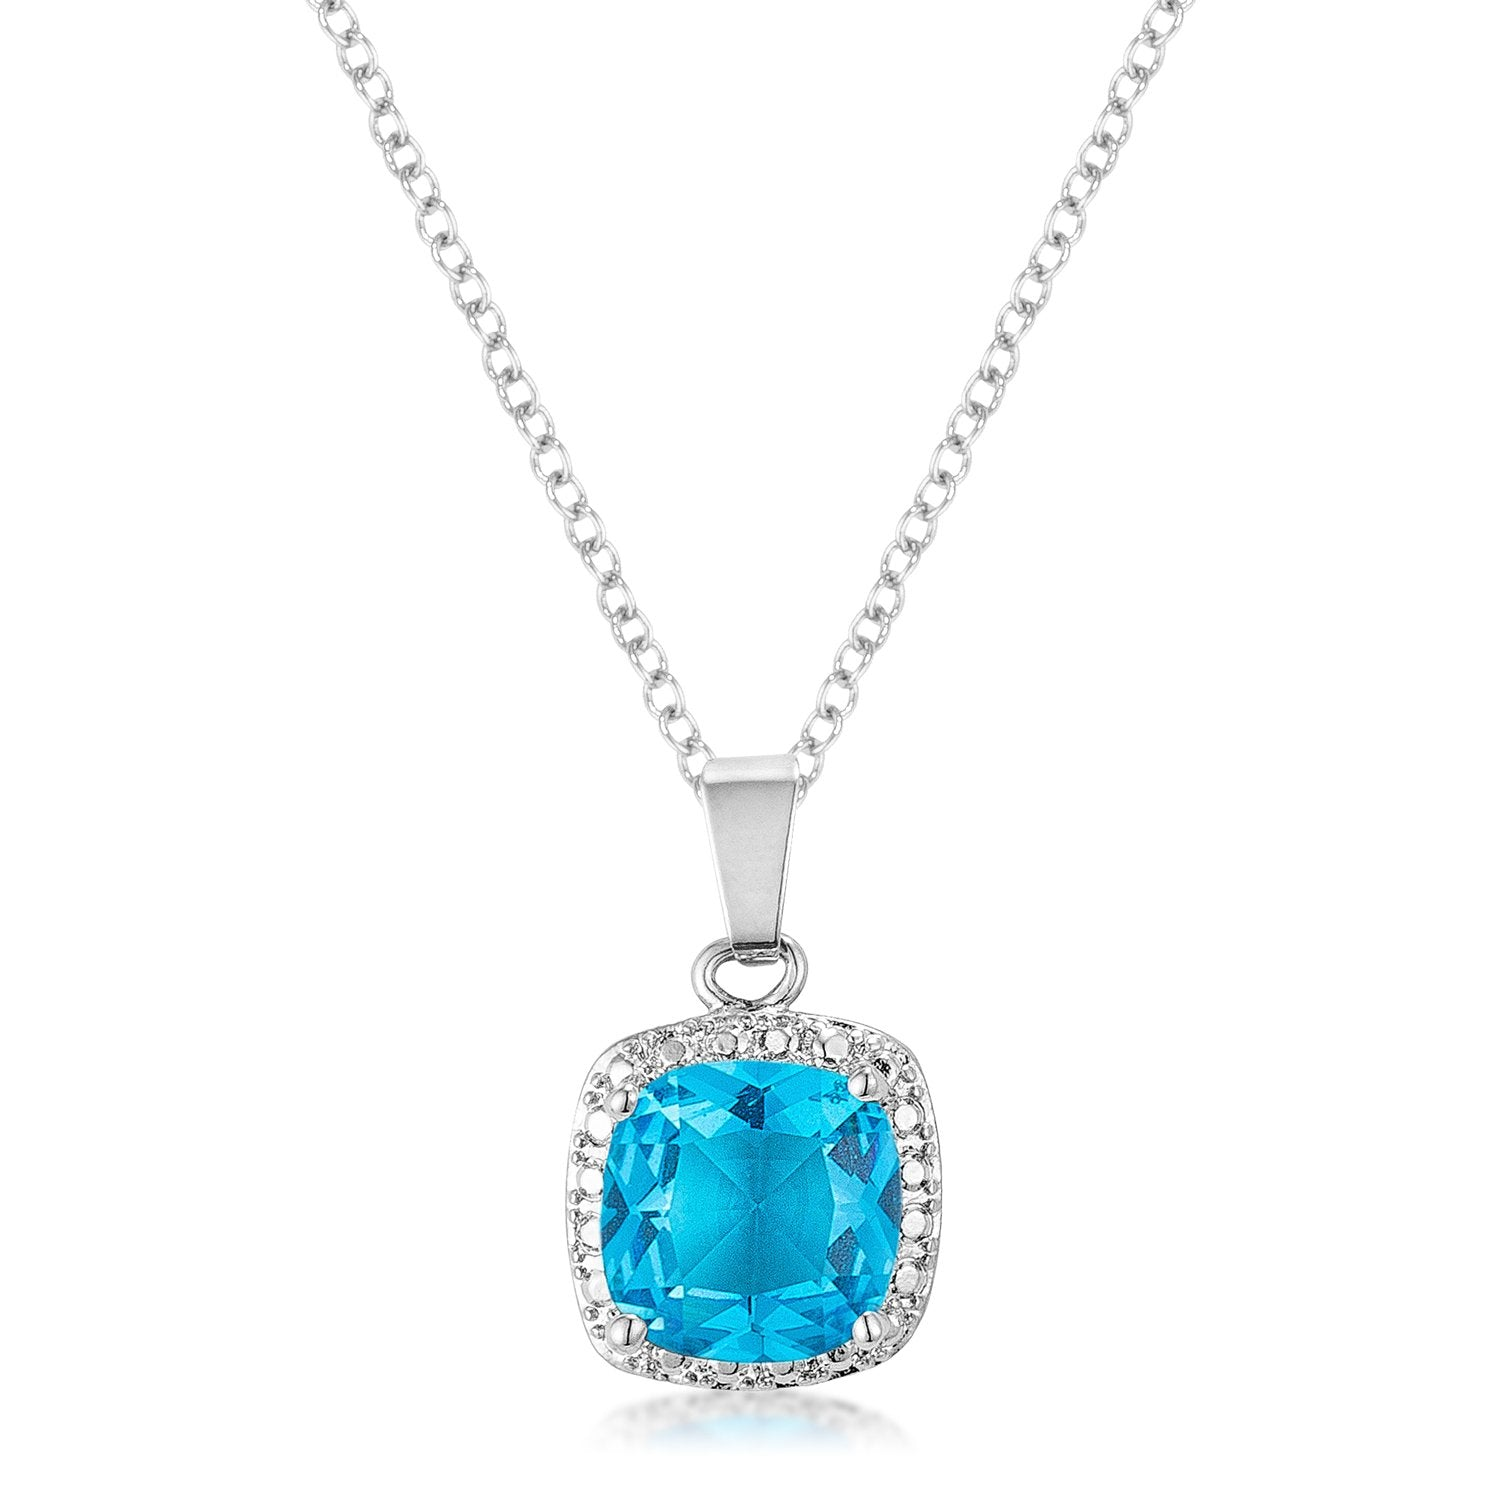 10mm Cushion Cut Aqua Cubic Zirconia Fashion Pendant - P11116R-S32